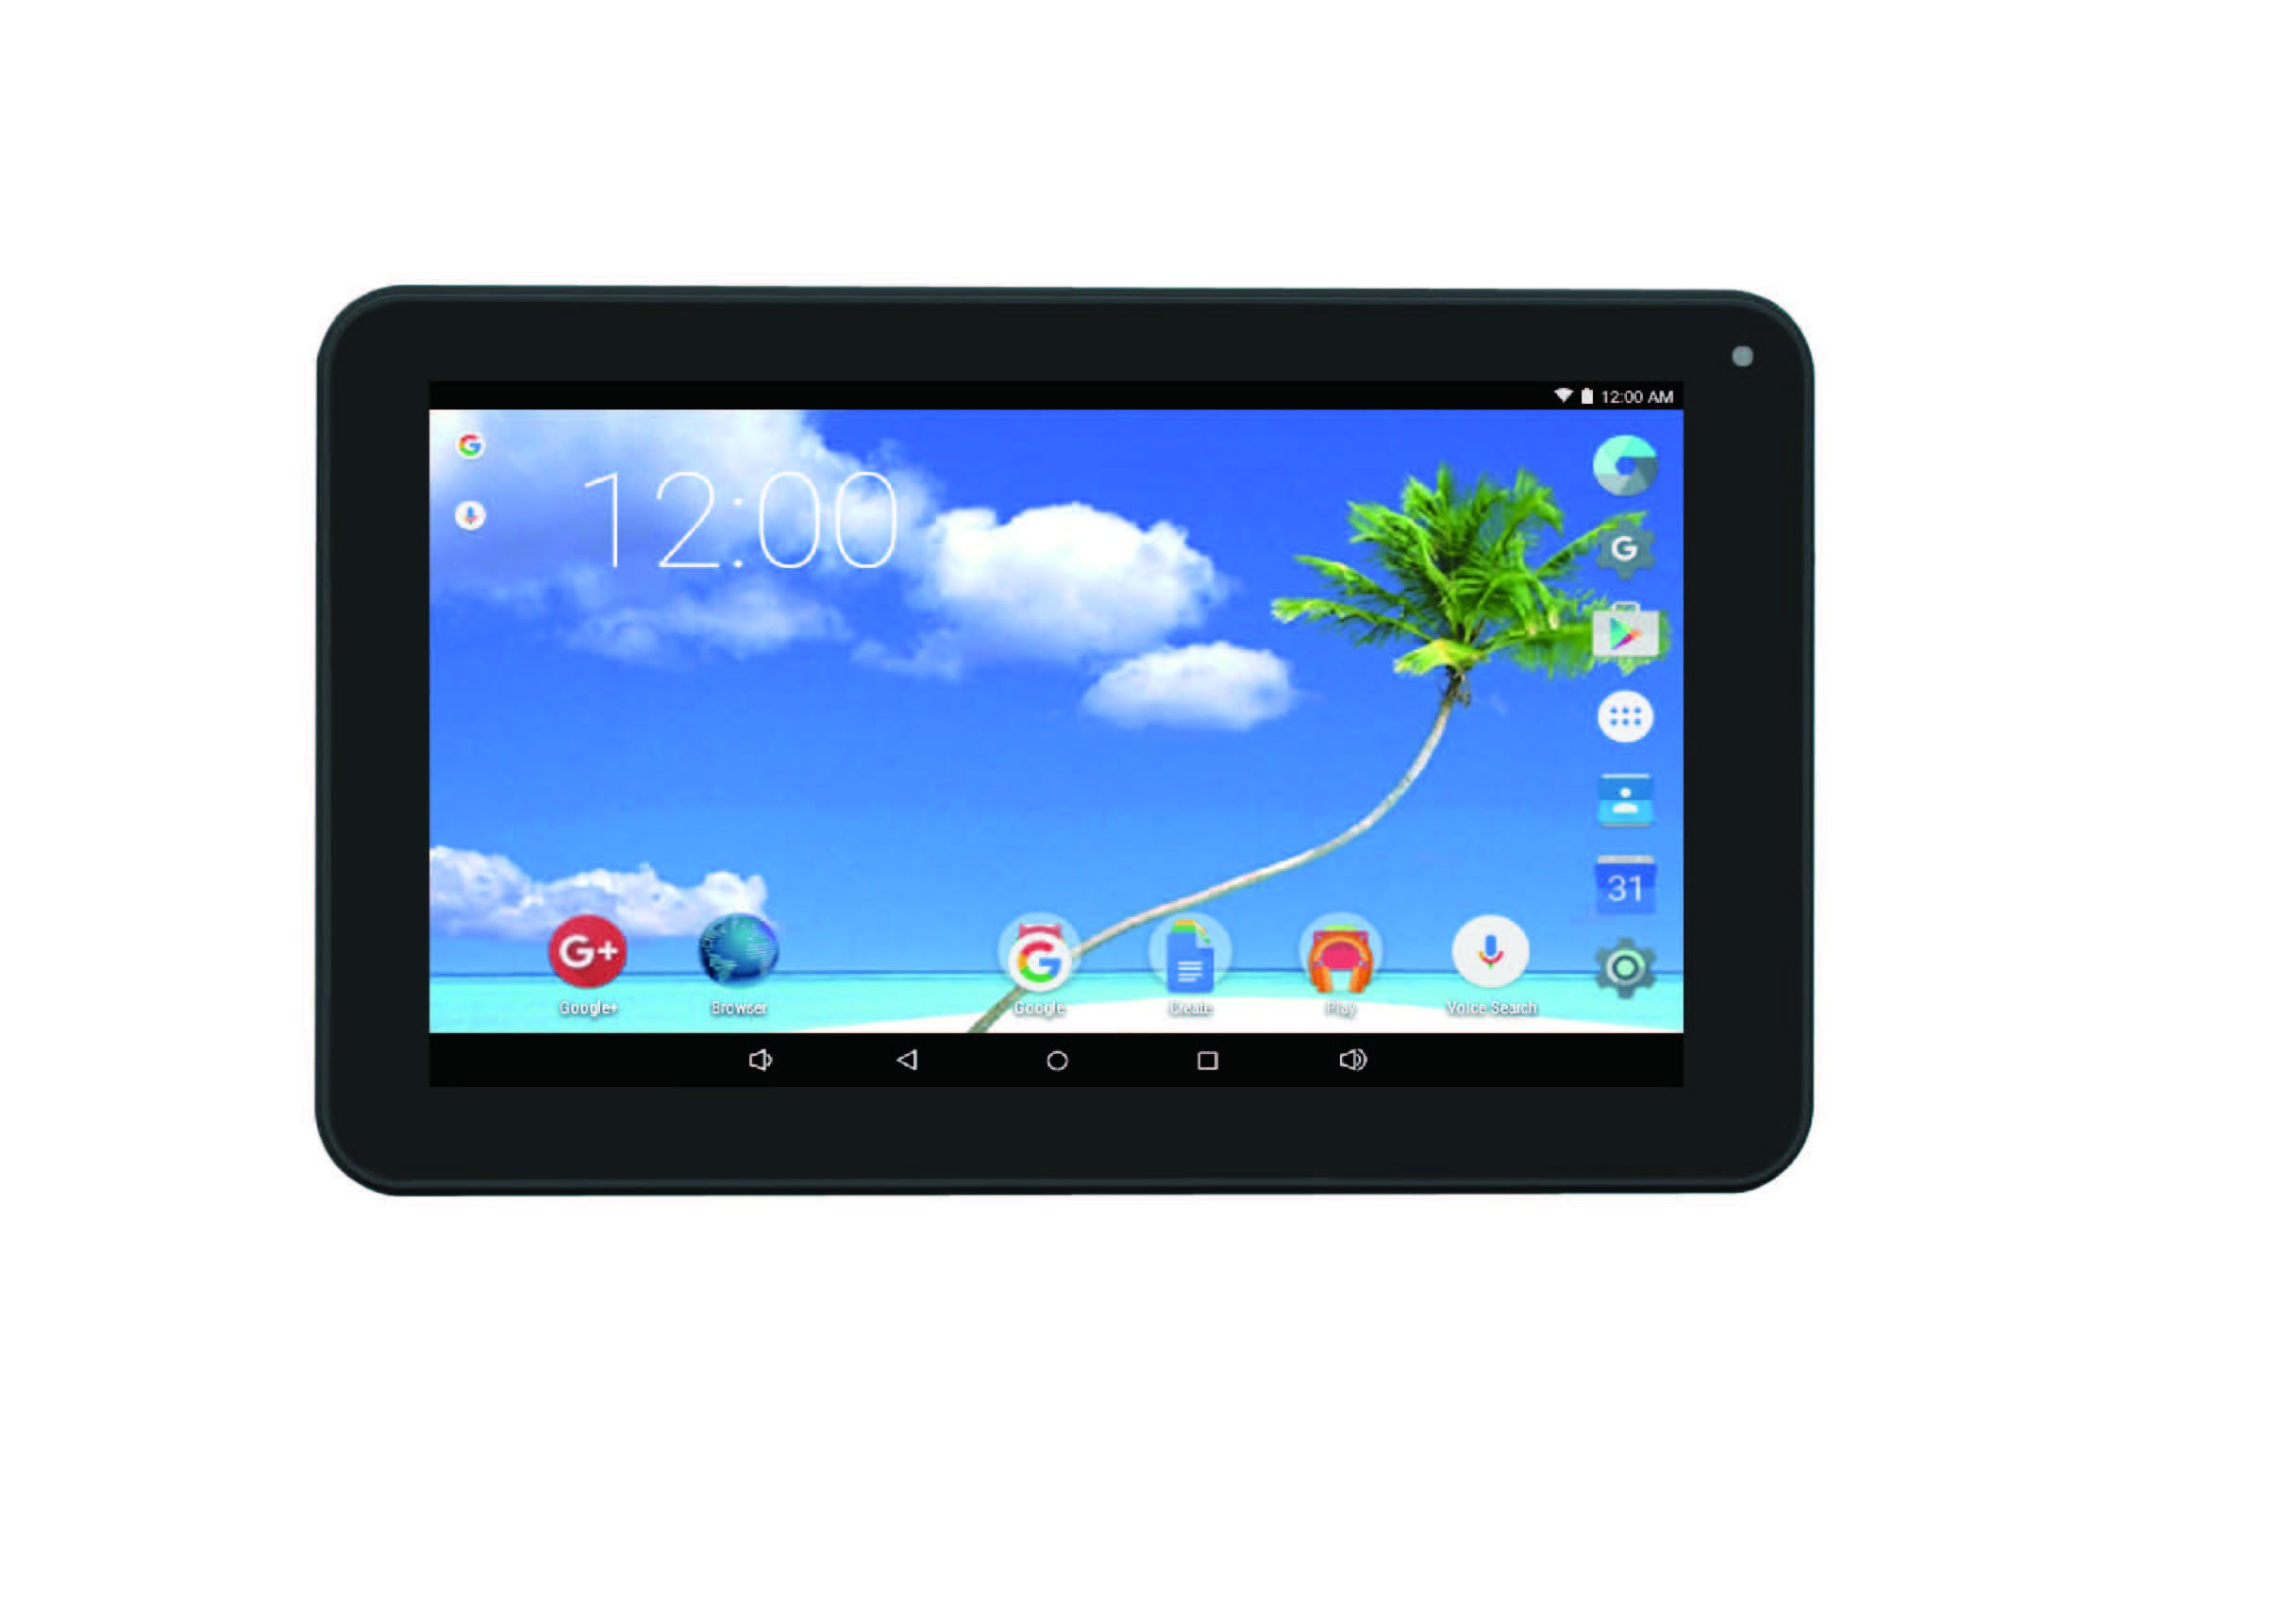 Proscan PLT9650 (K-512-8GB) 9'' Tablet Touch Screen Android 5.1 Lollipop 1.26GHz Quad Core Processor